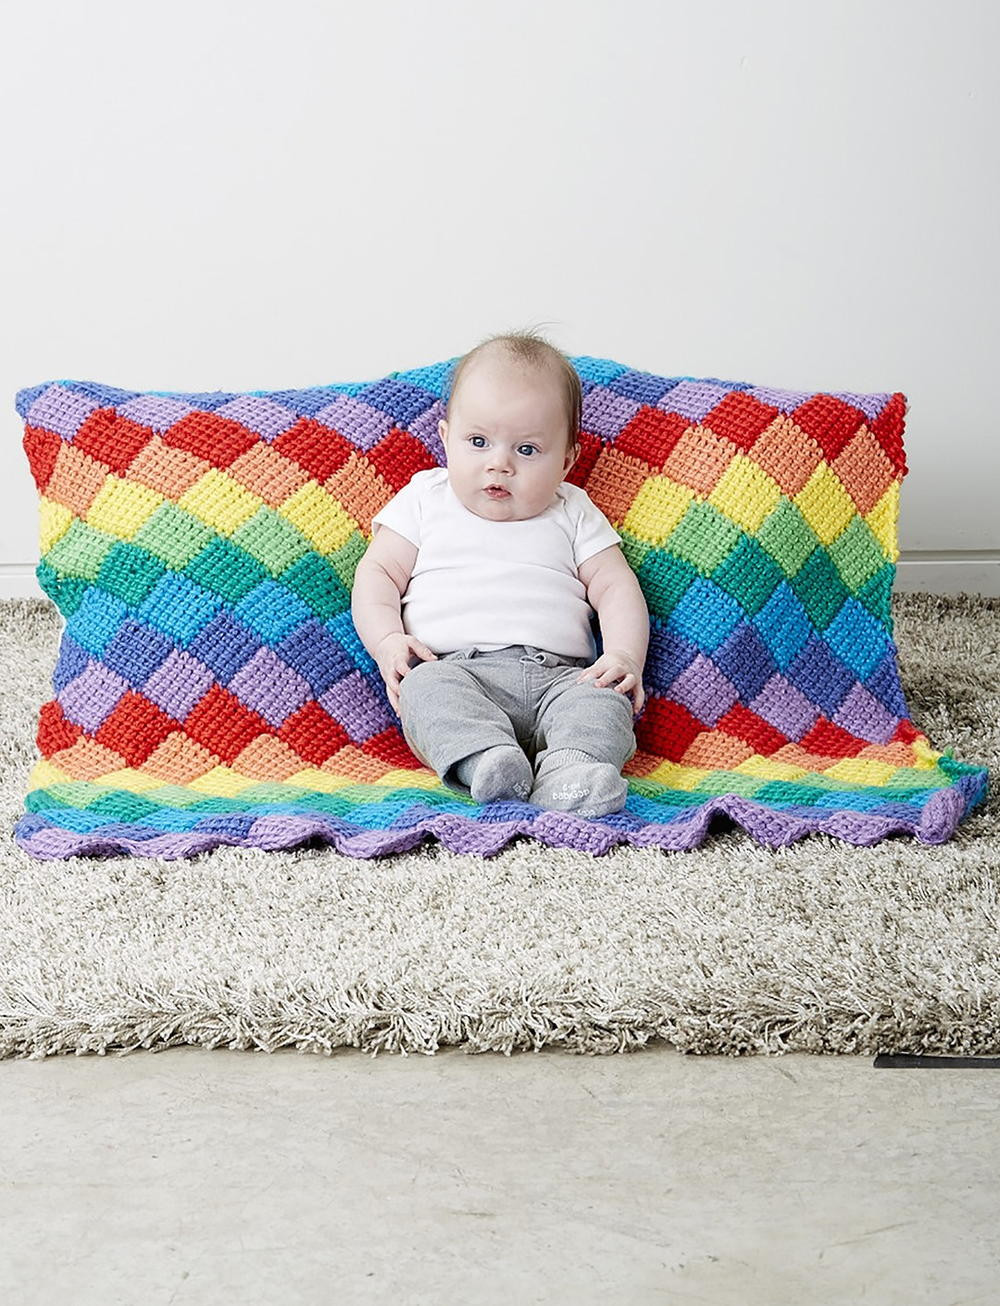 Rainbow Baby Blanket Luxury Rainbow Tunisian Entrelac Crochet Blanket Of Charming 42 Ideas Rainbow Baby Blanket